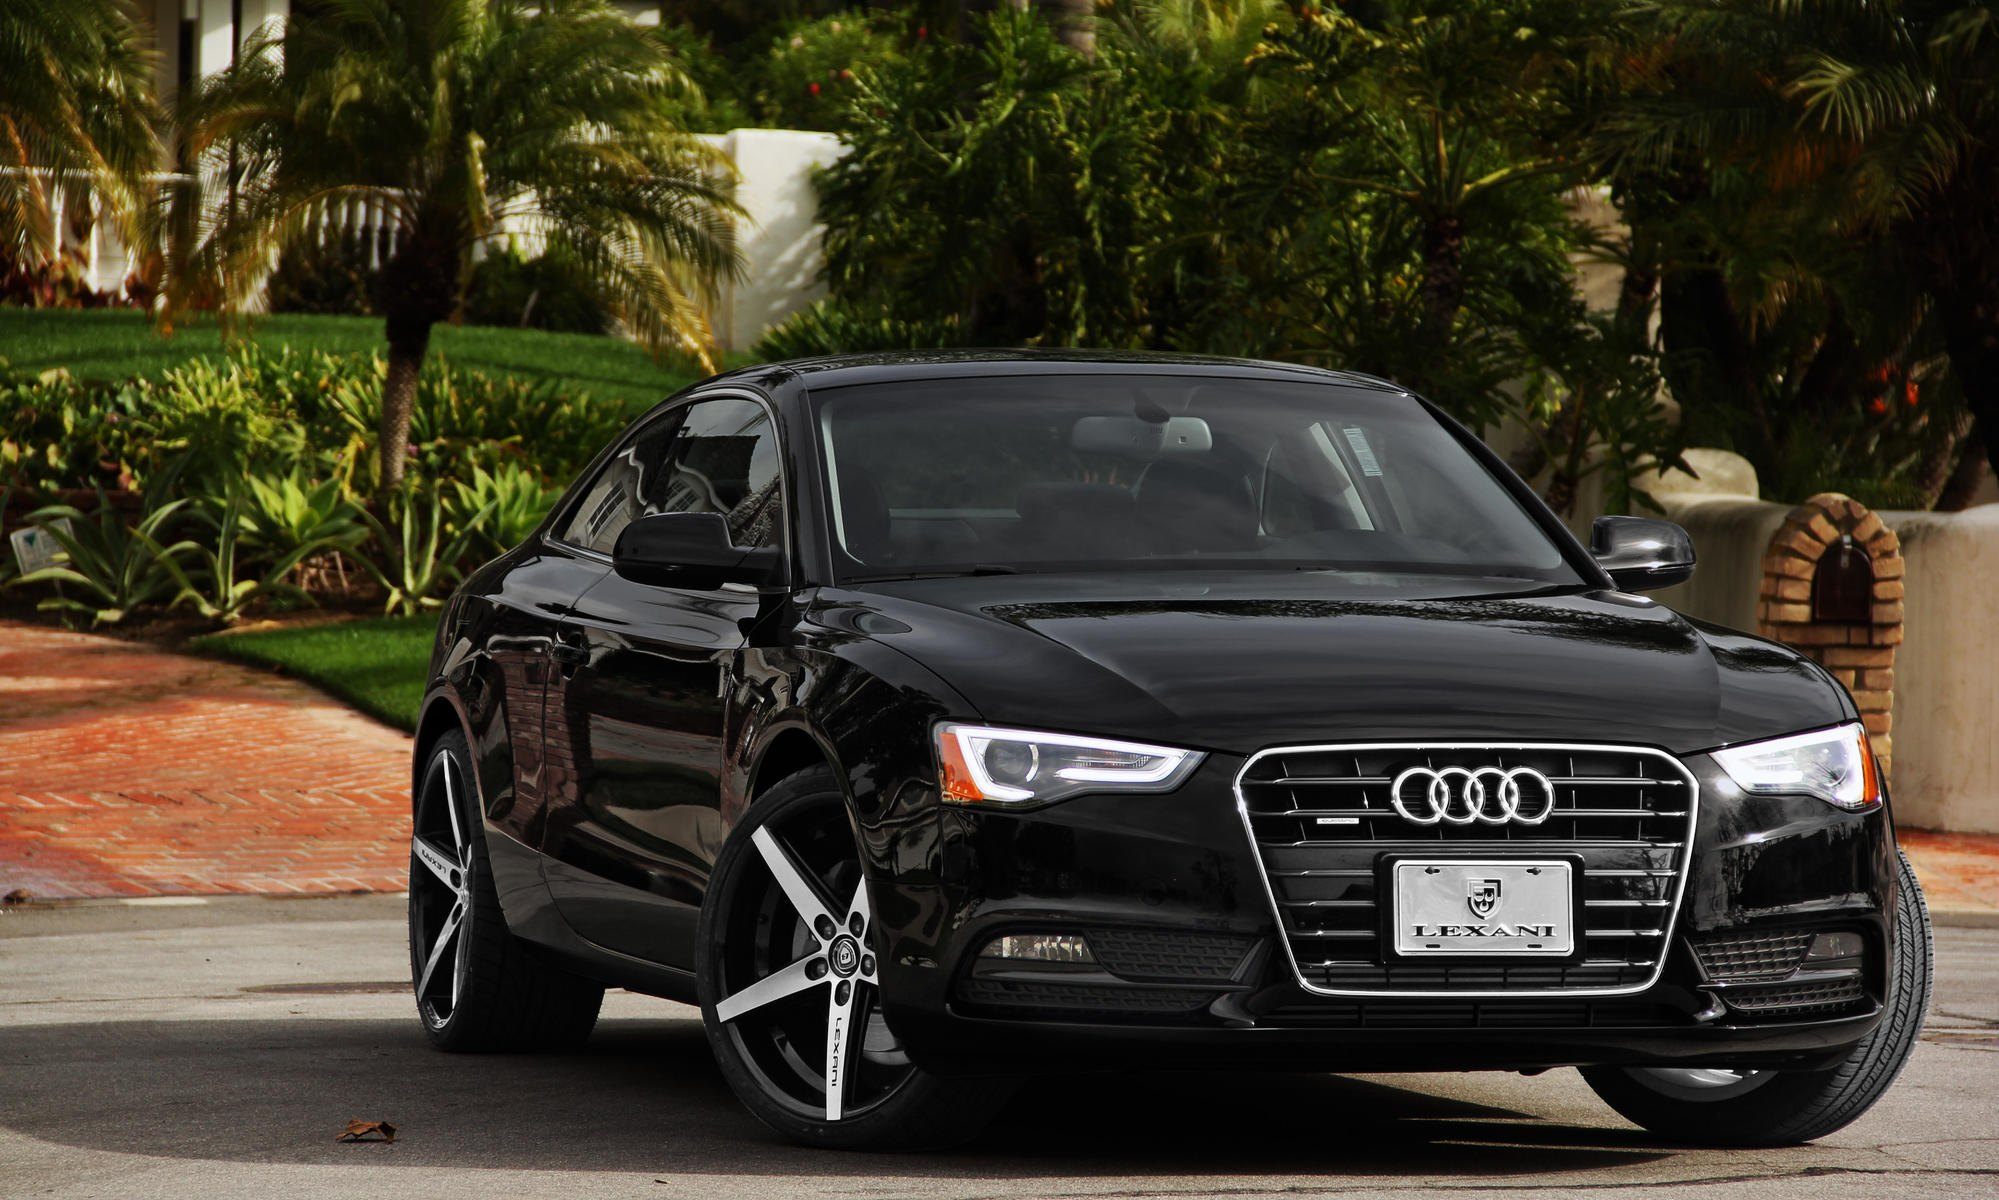 Drop Of Luxury Black Audi A Enhanced By Lexani CARiDcom Gallery - Black audi a5